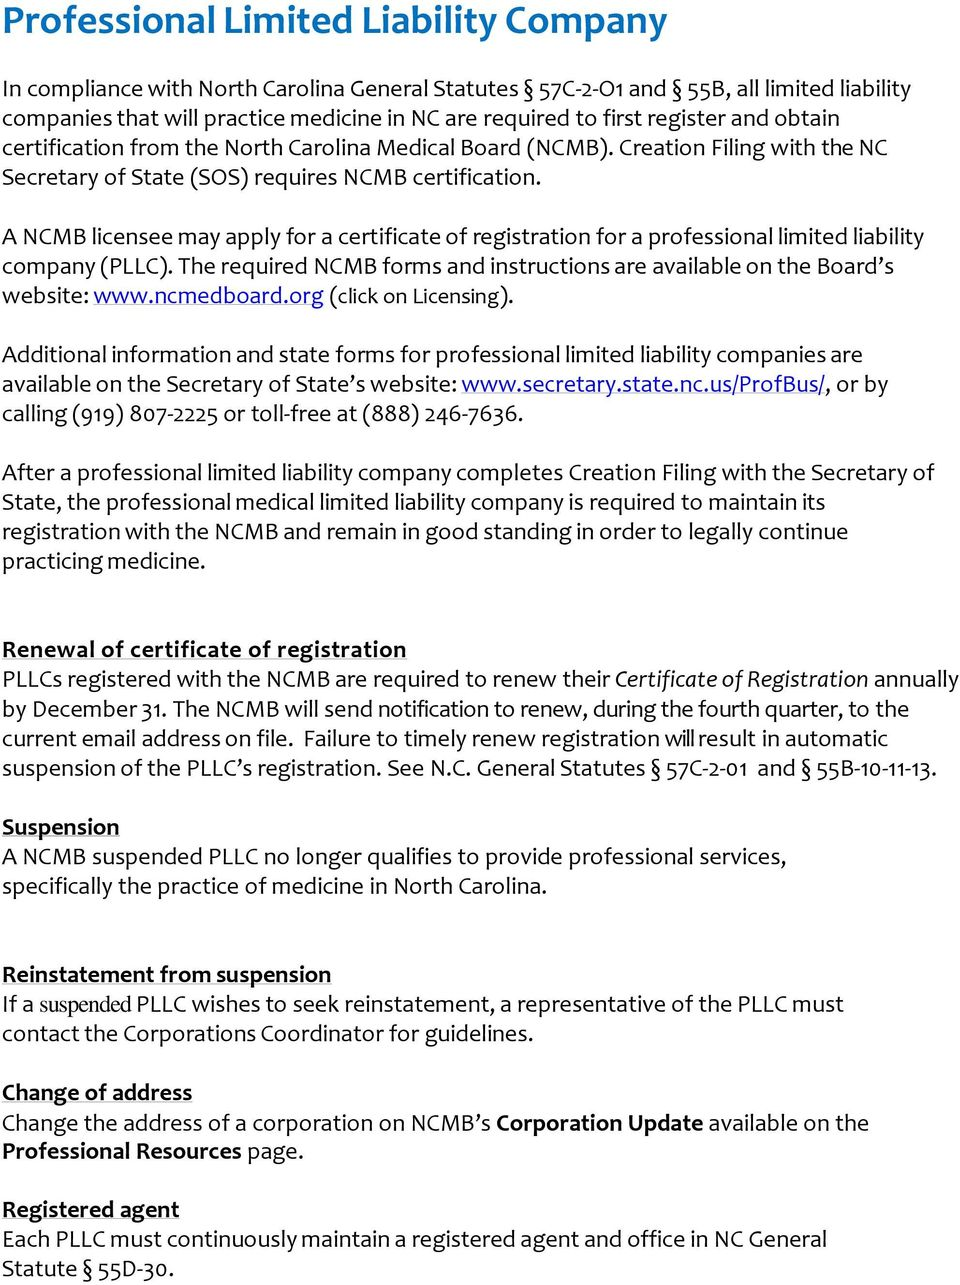 A NCMB licensee may apply for a certificate of registration for a professional limited liability company (PLLC). The required NCMB forms and instructions are available on the Board s website: www.